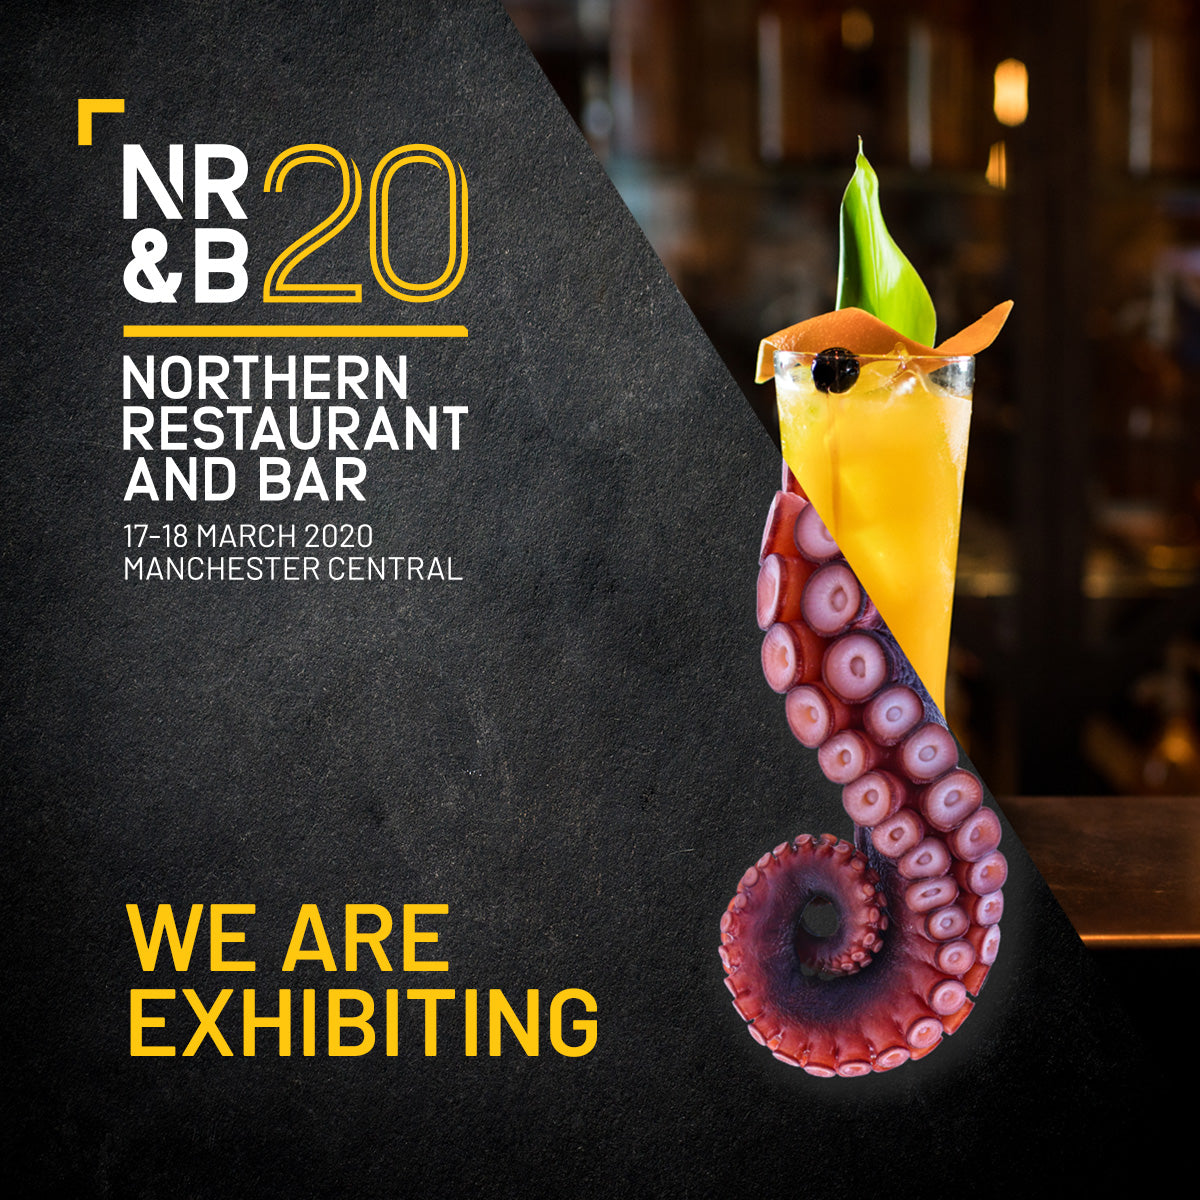 We are exhibiting at the Northern Restaurant and Bar in March